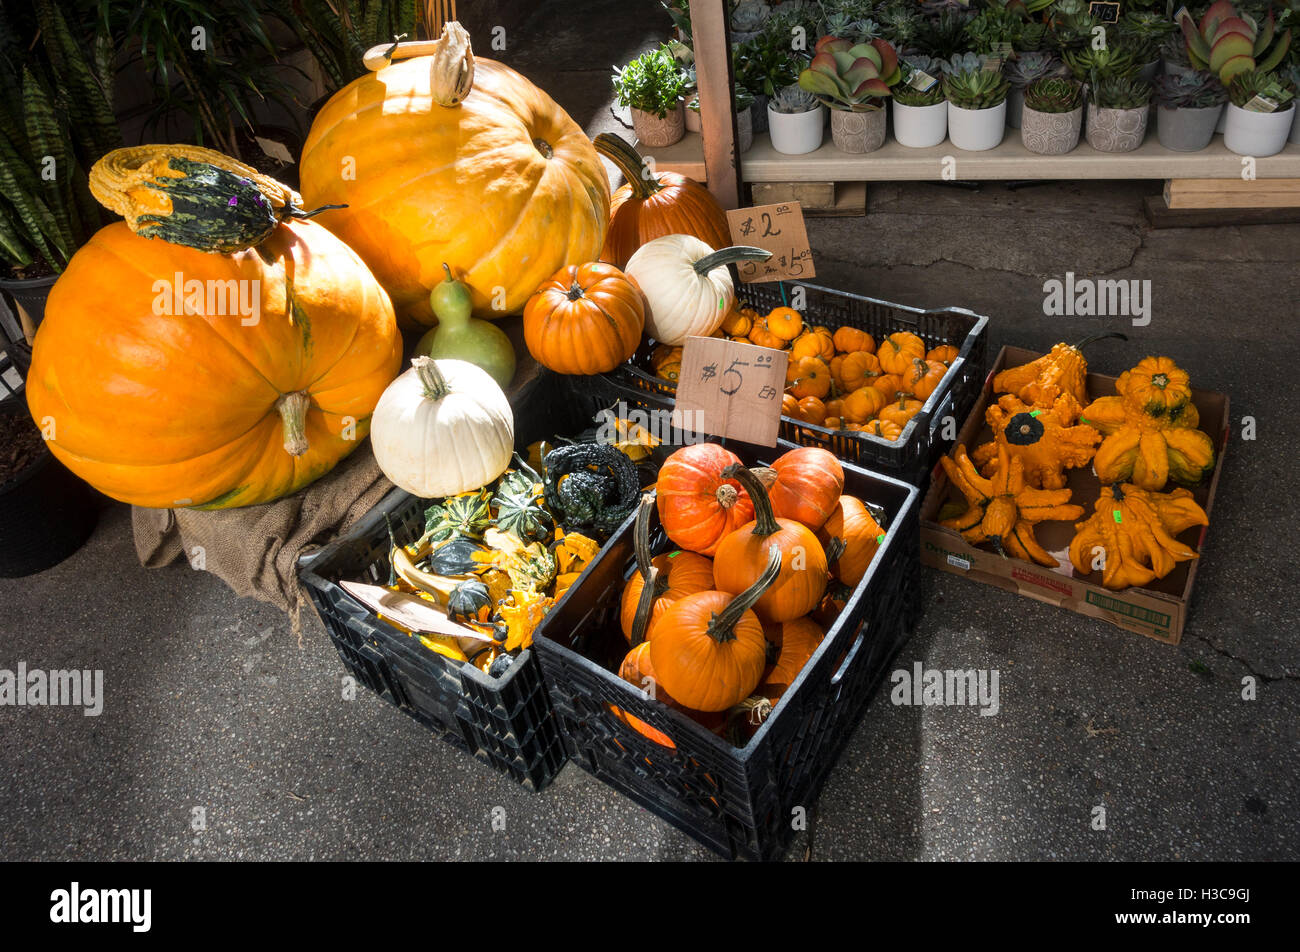 A variety of decorative pumpkins for sale before Halloween - Stock Image